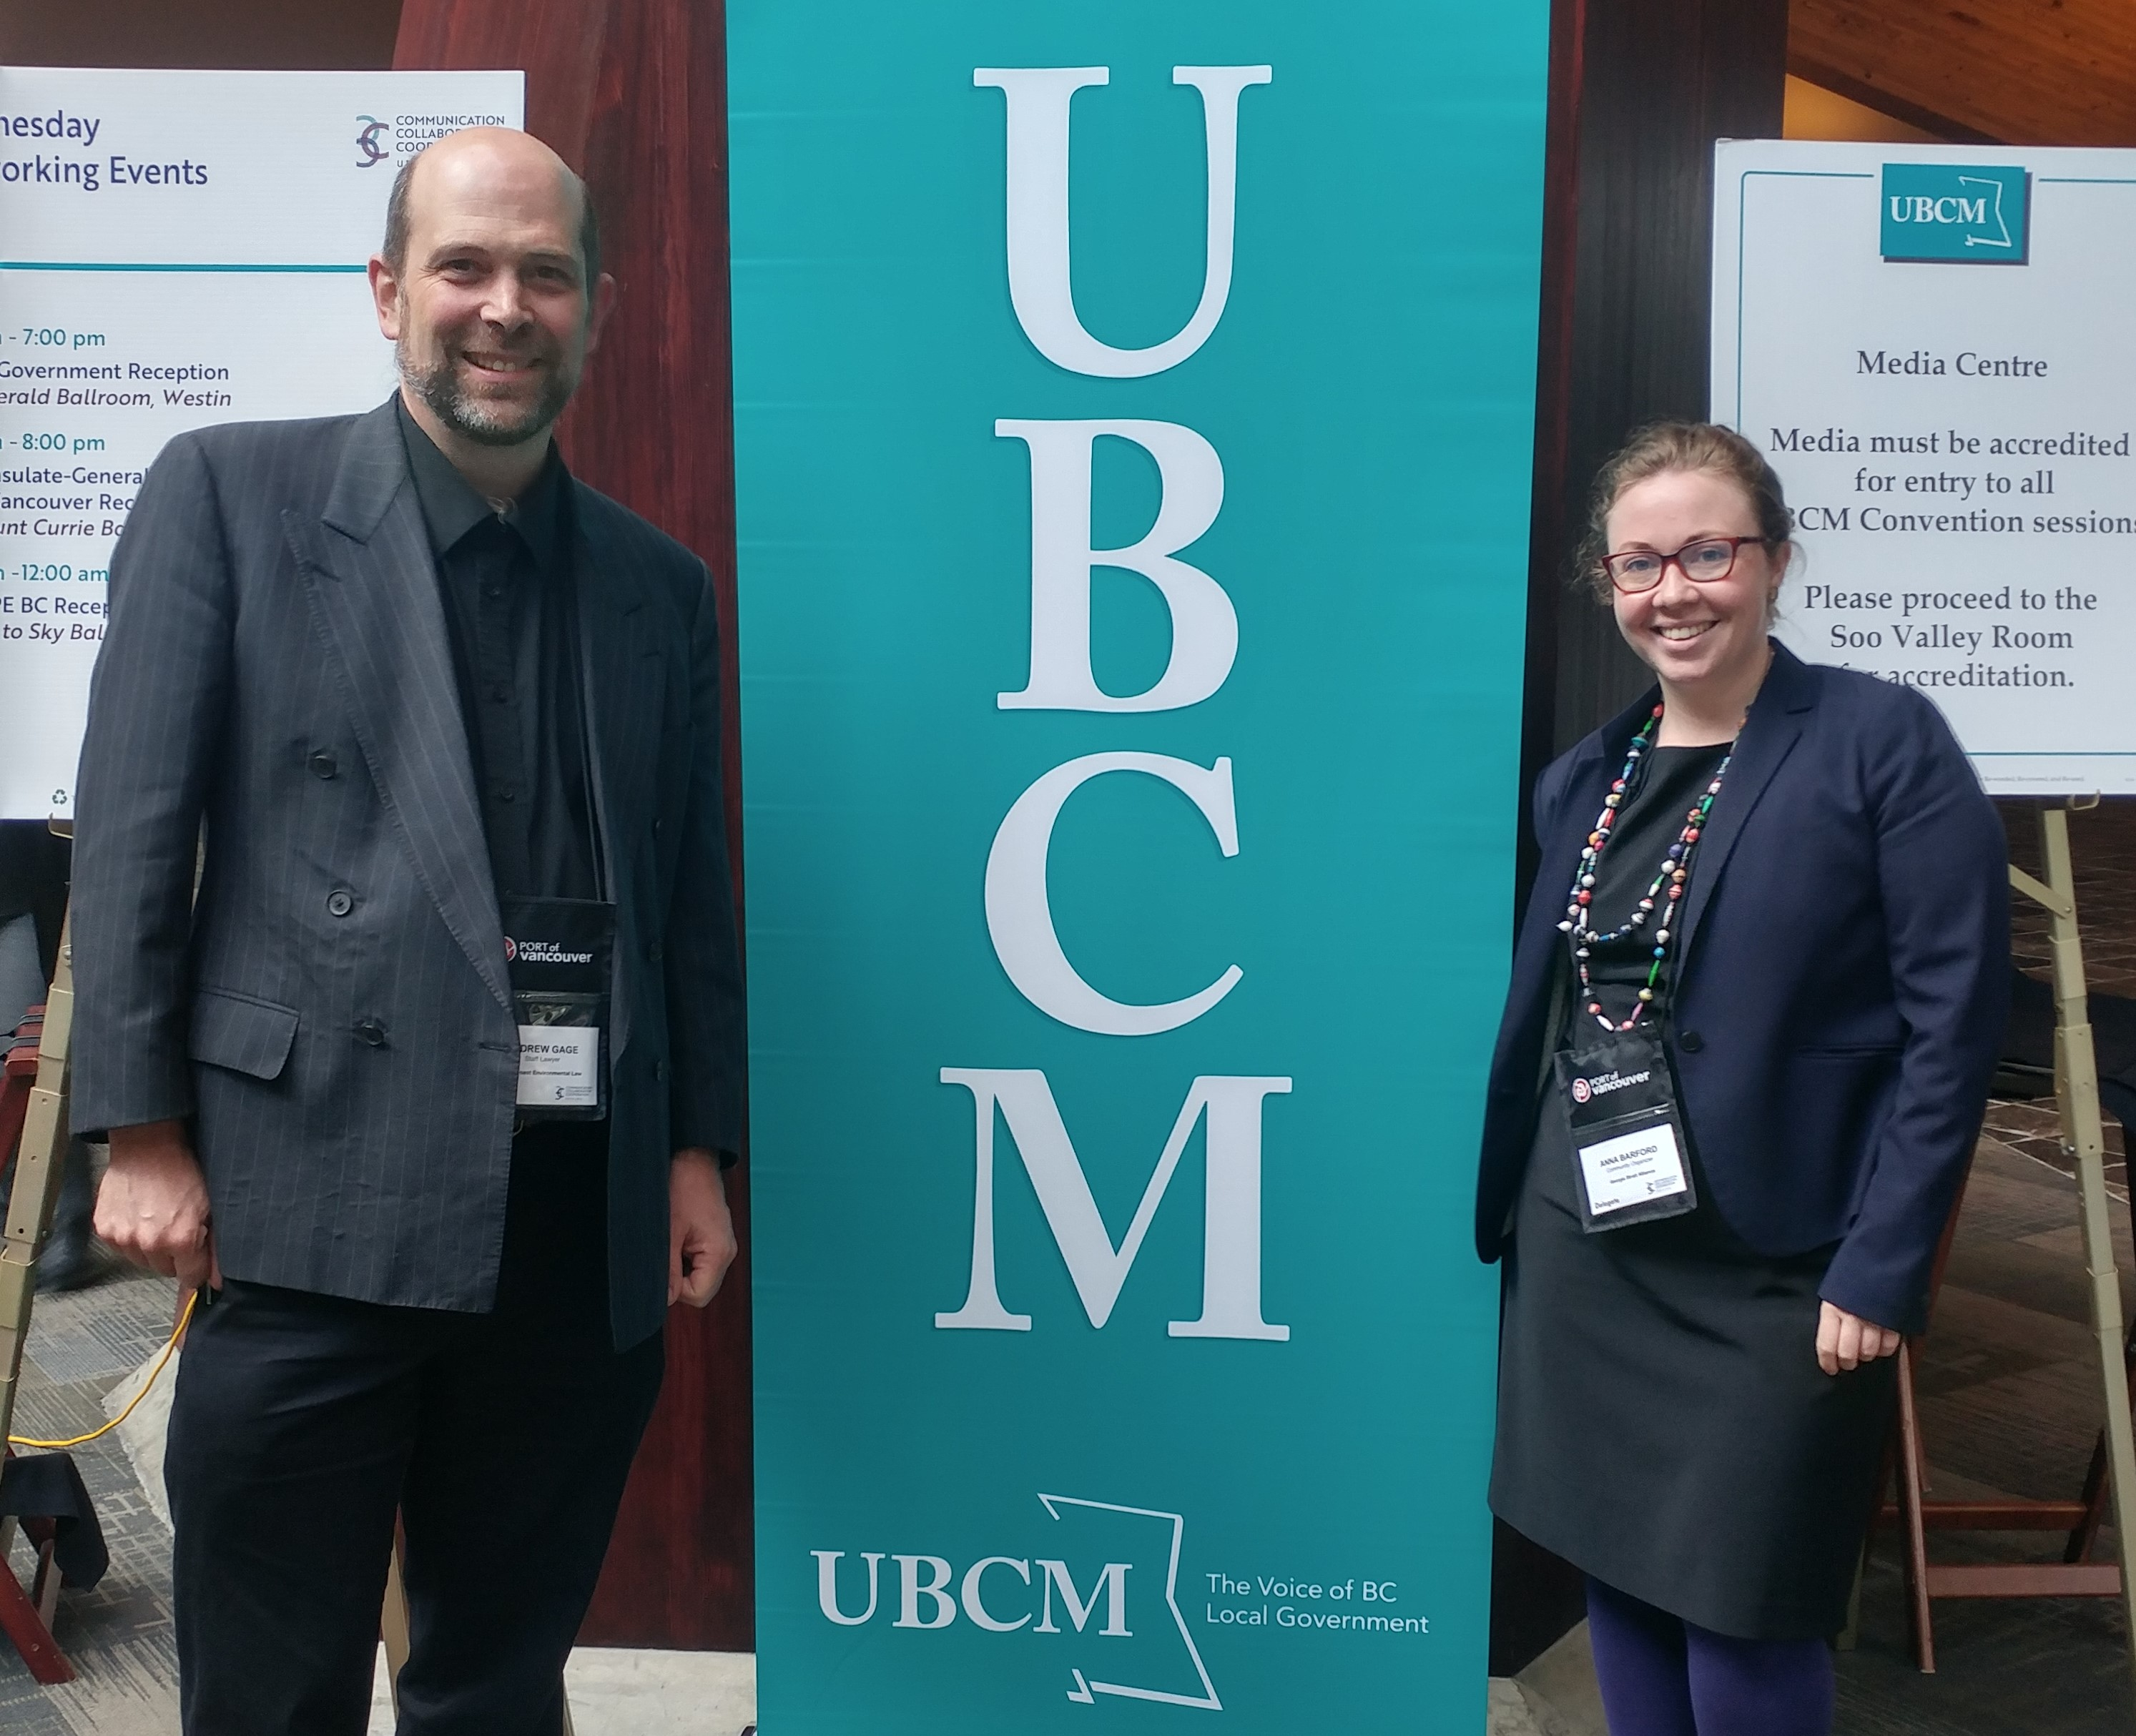 Andrew Gage + Anna Barford at UBCM (Photo: Lisa Matthaus)